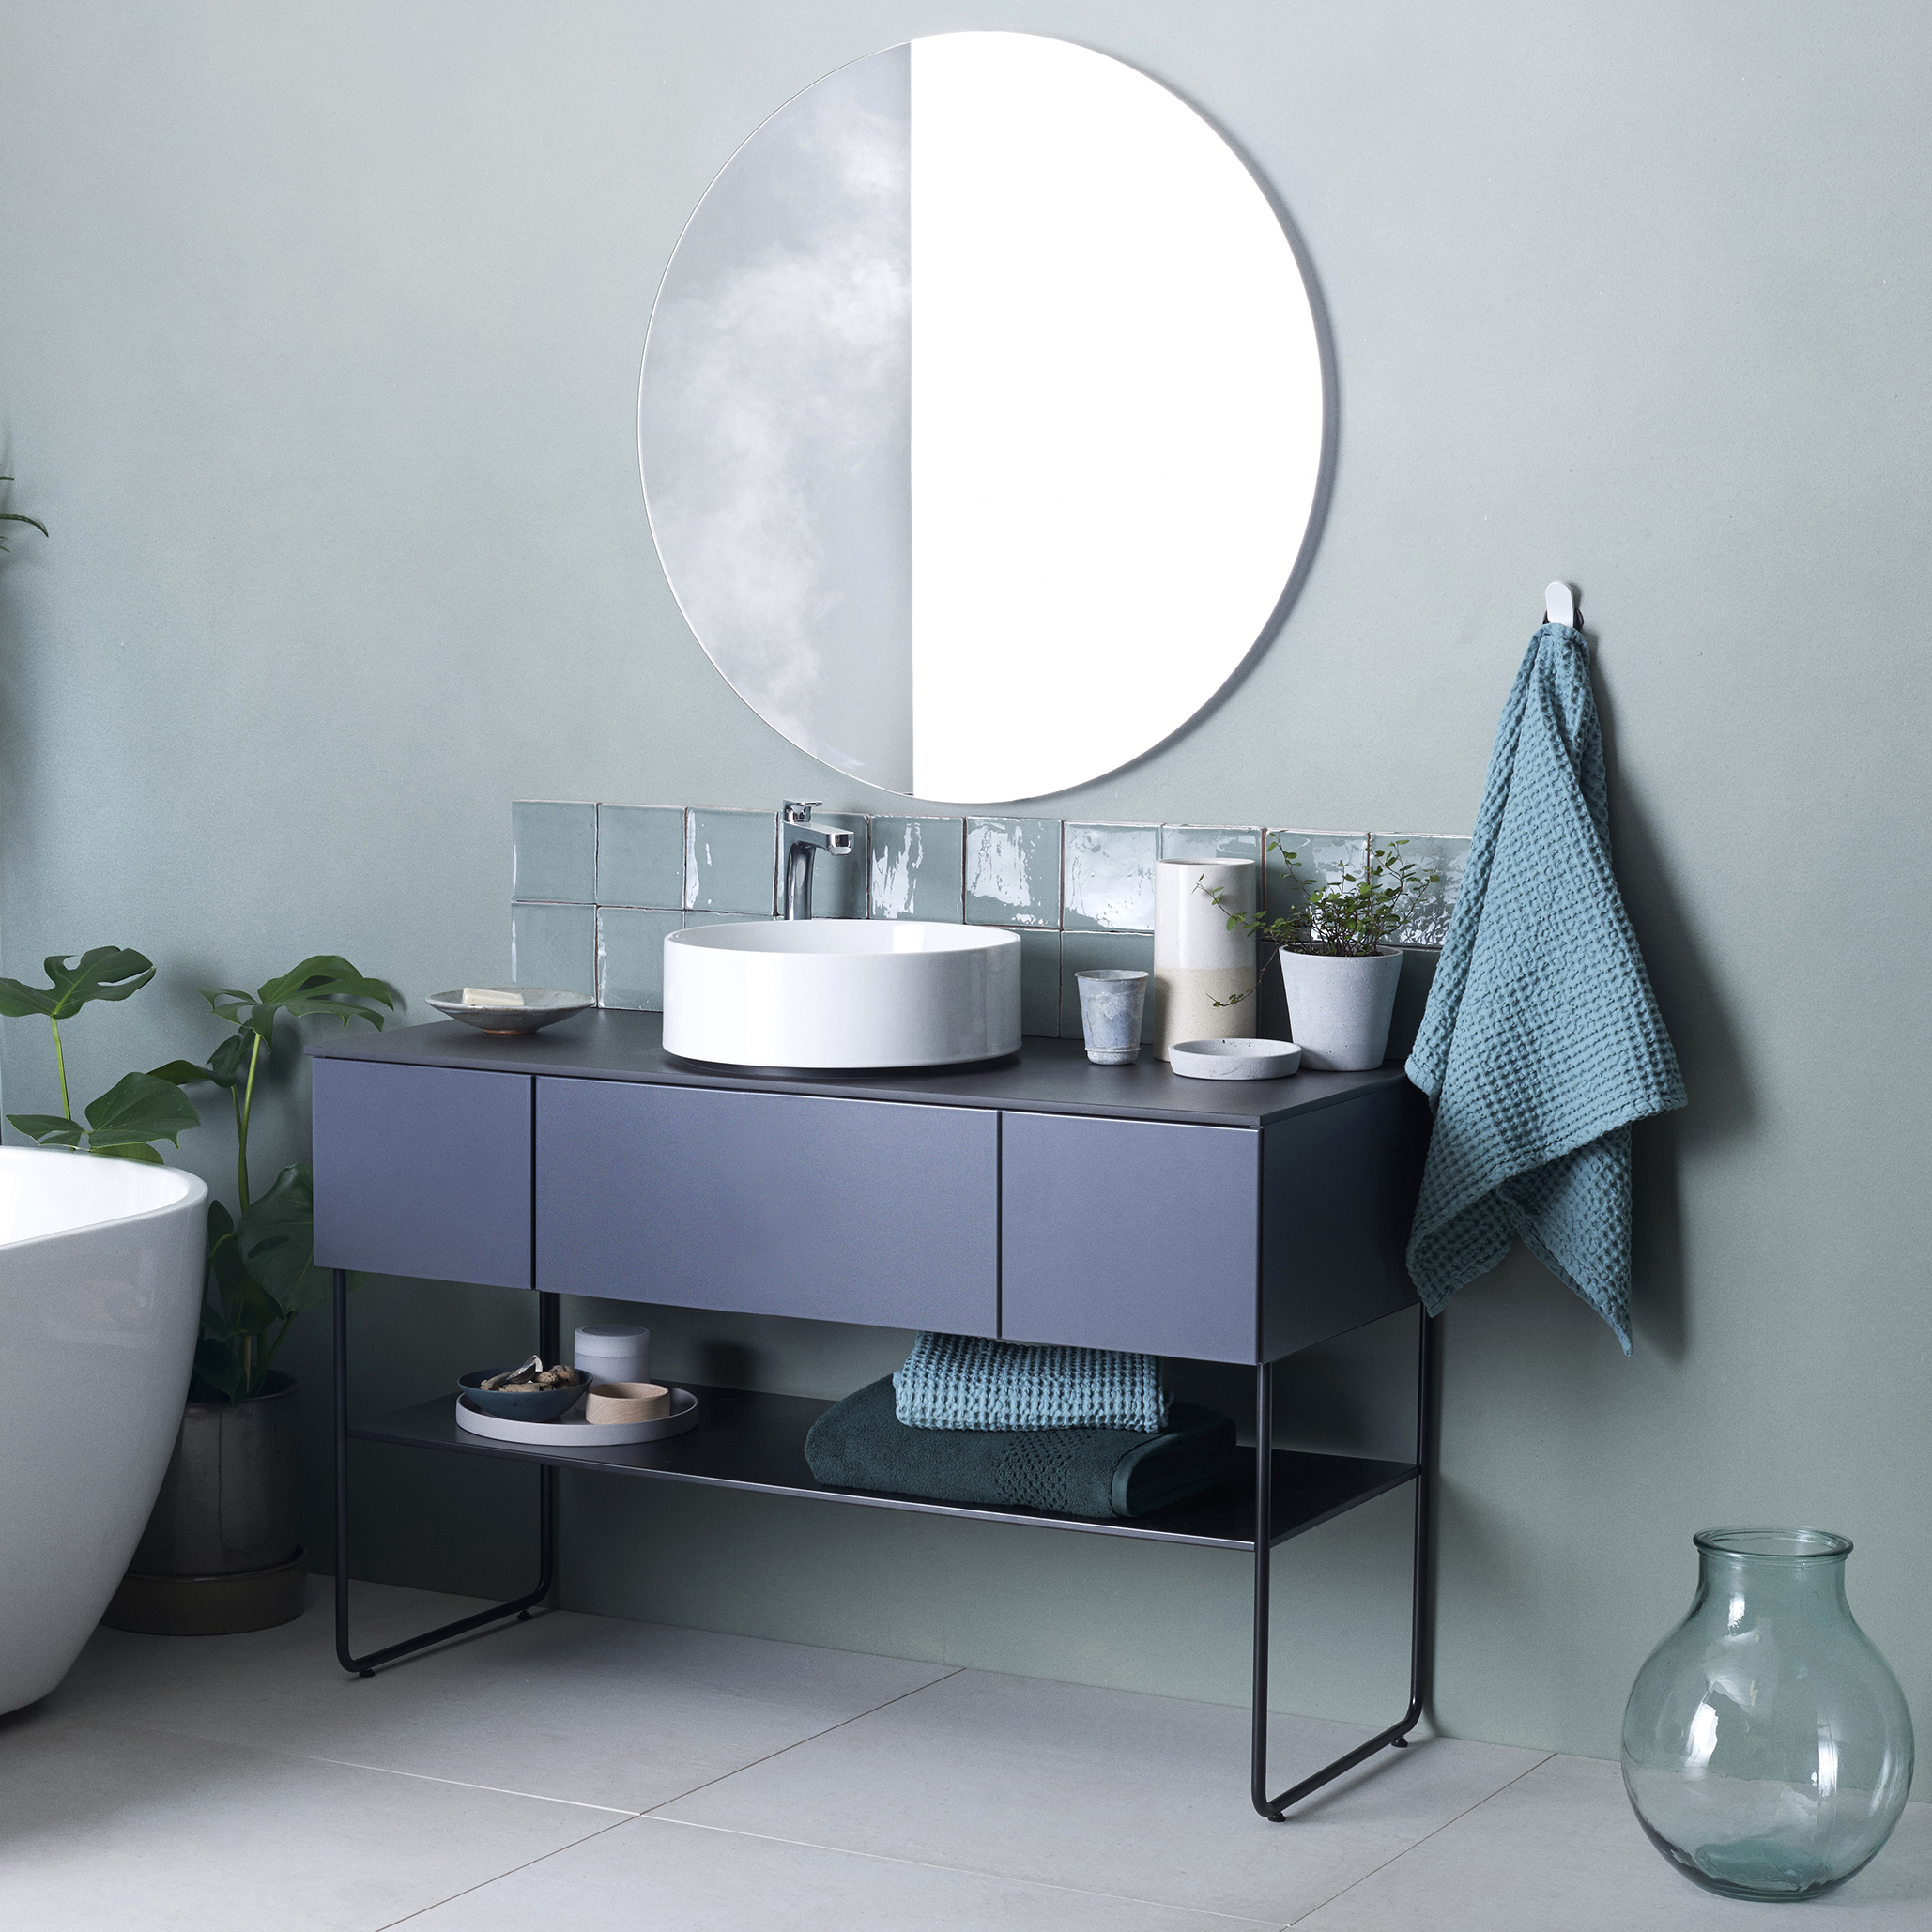 Delivering sustainability into Nordic bathrooms